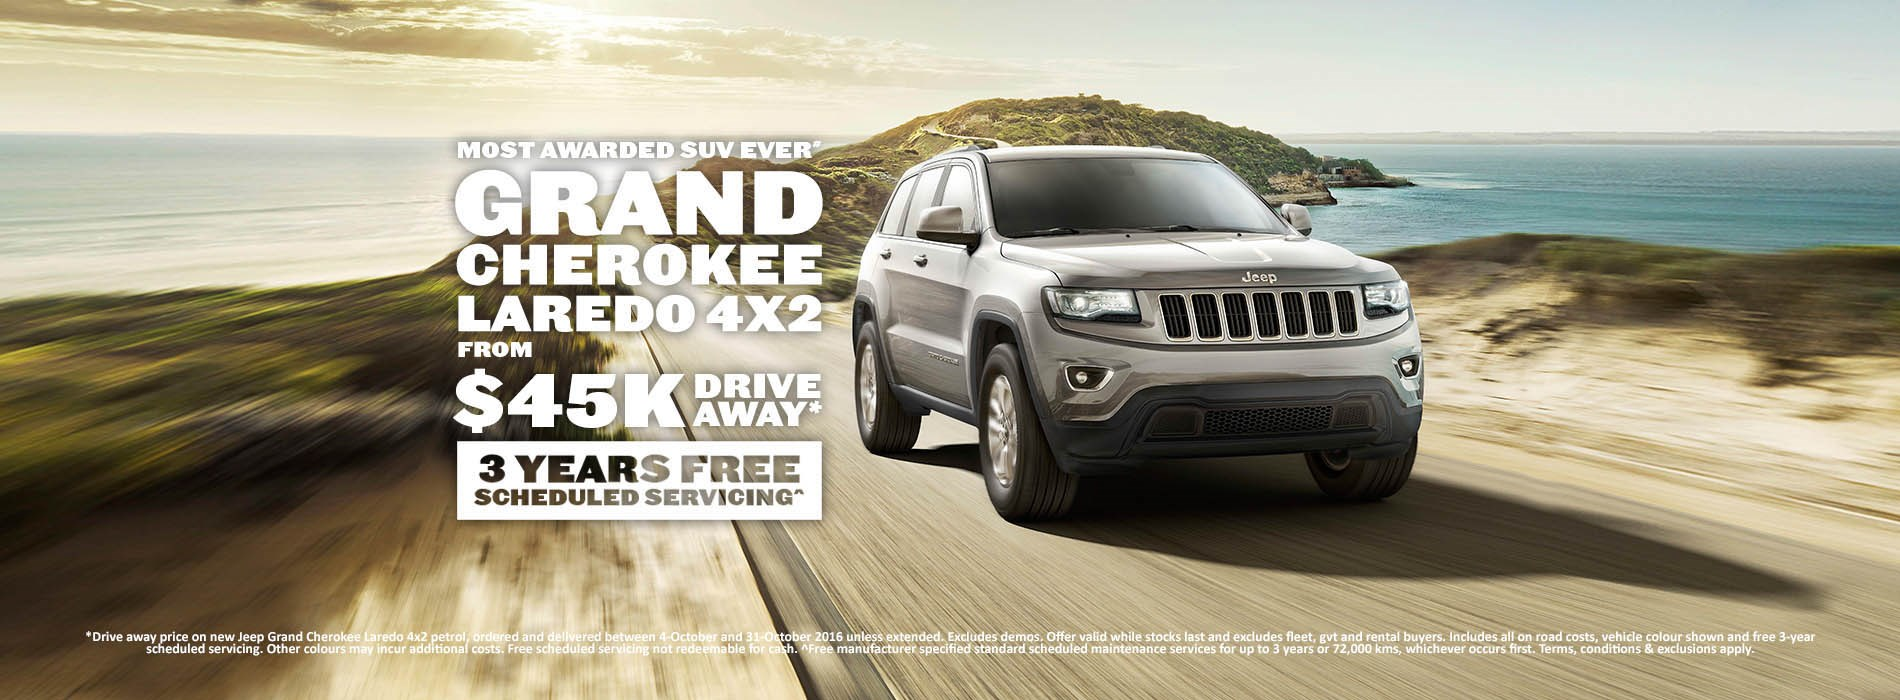 Jeep Grand Cherokee Laredo Offer